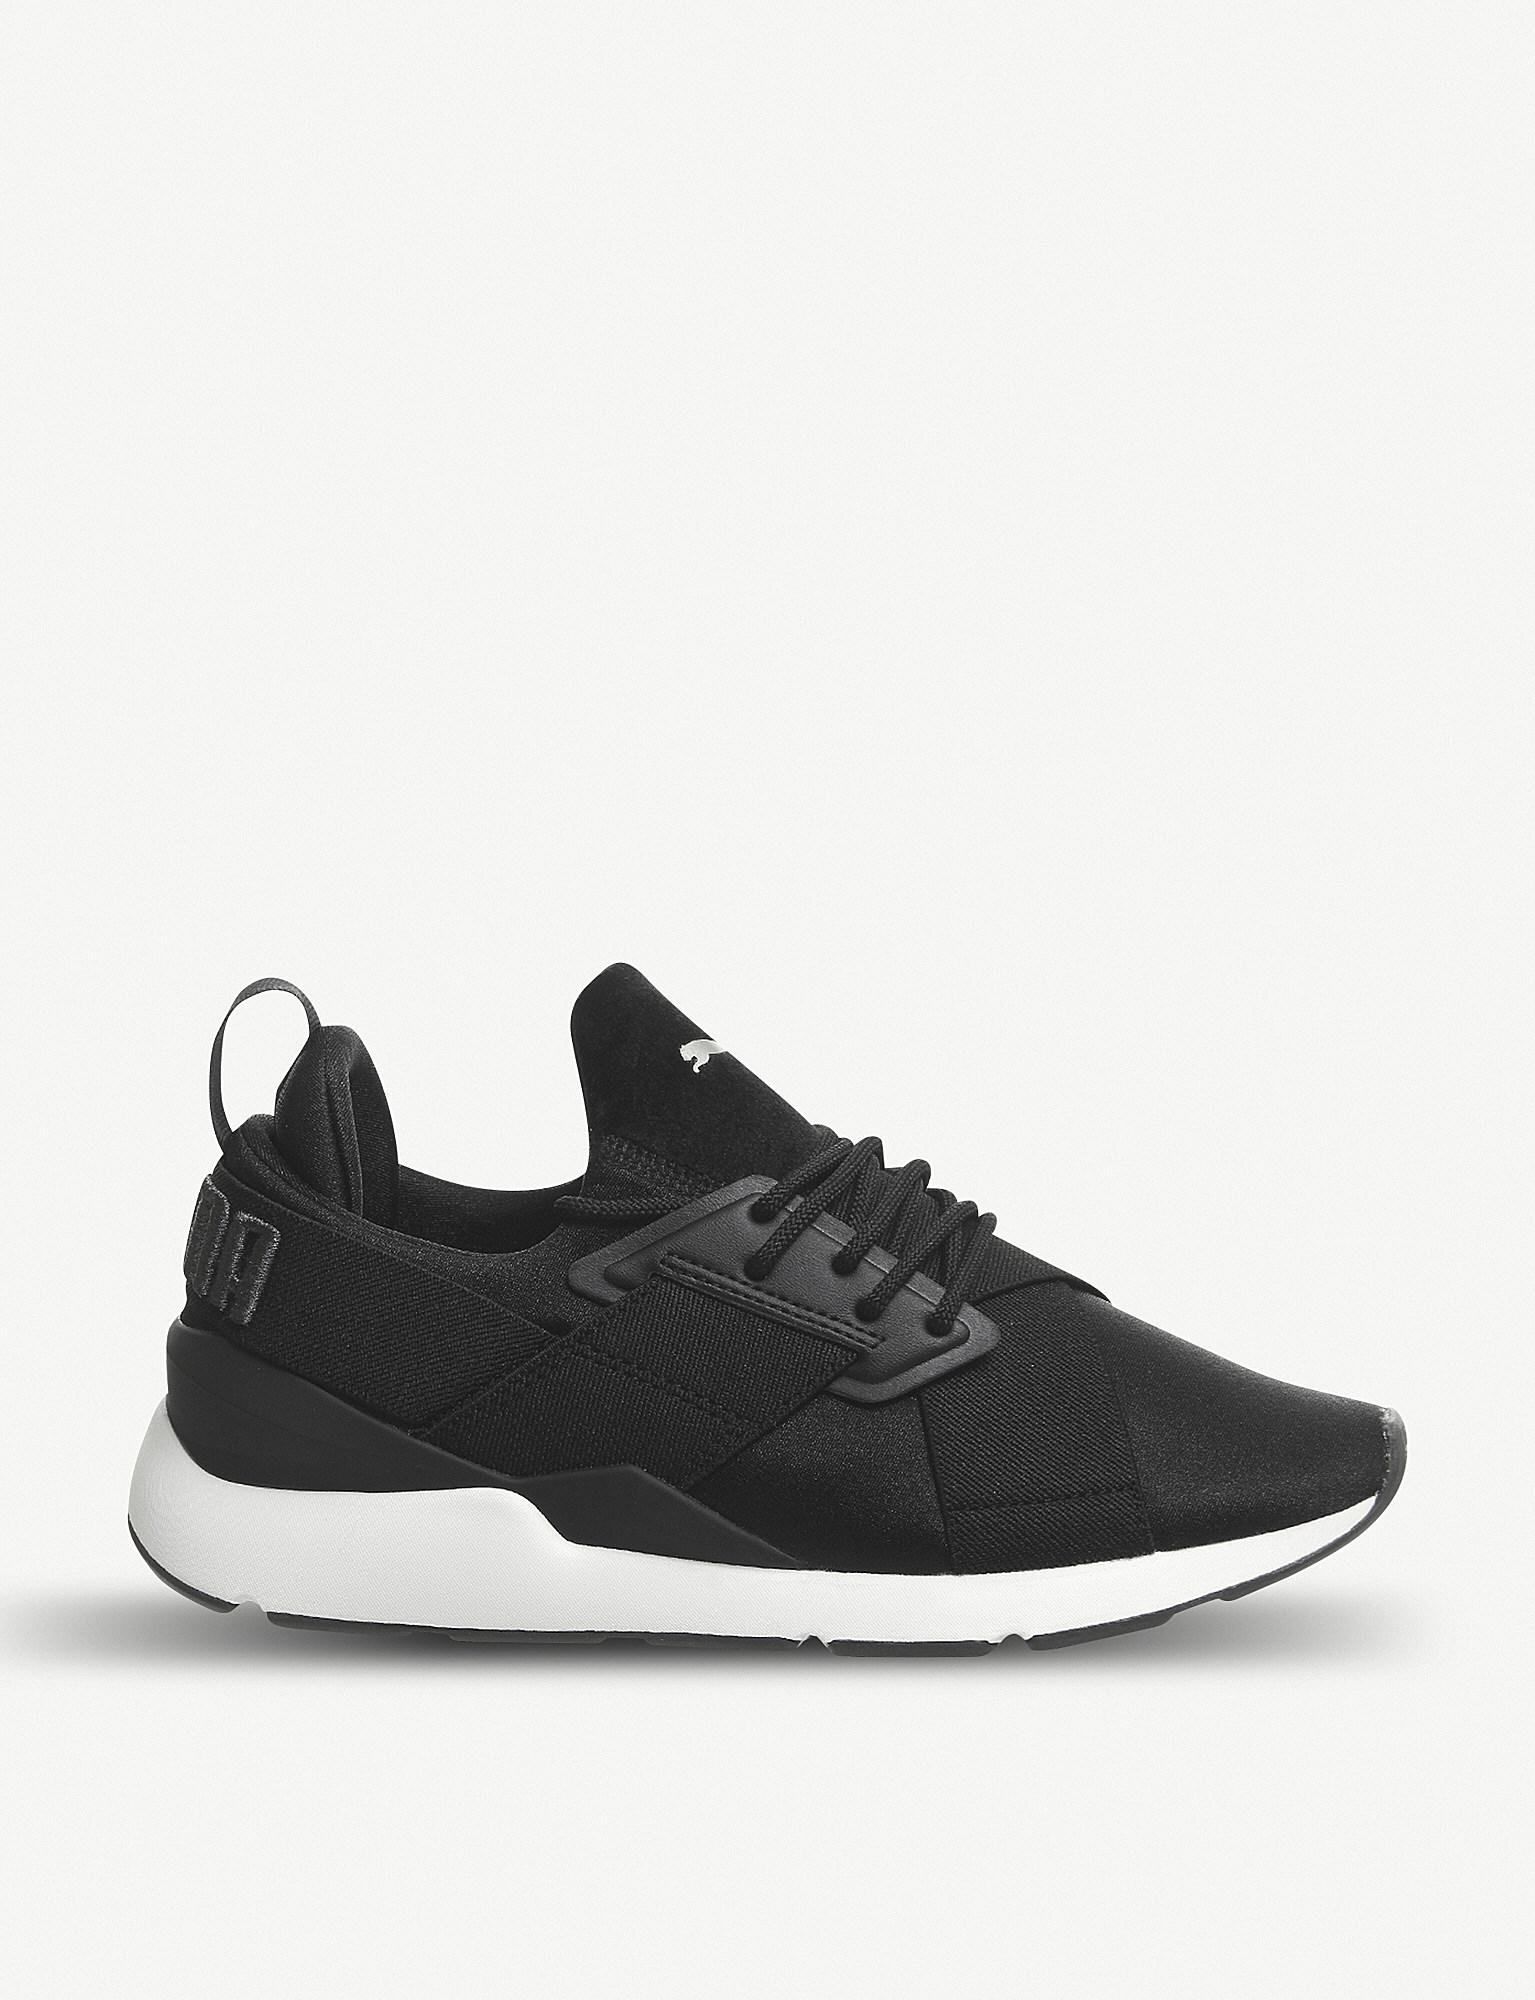 1c906855de6122 Lyst - PUMA Muse X-trap Satin Trainers in Black for Men - Save 15%